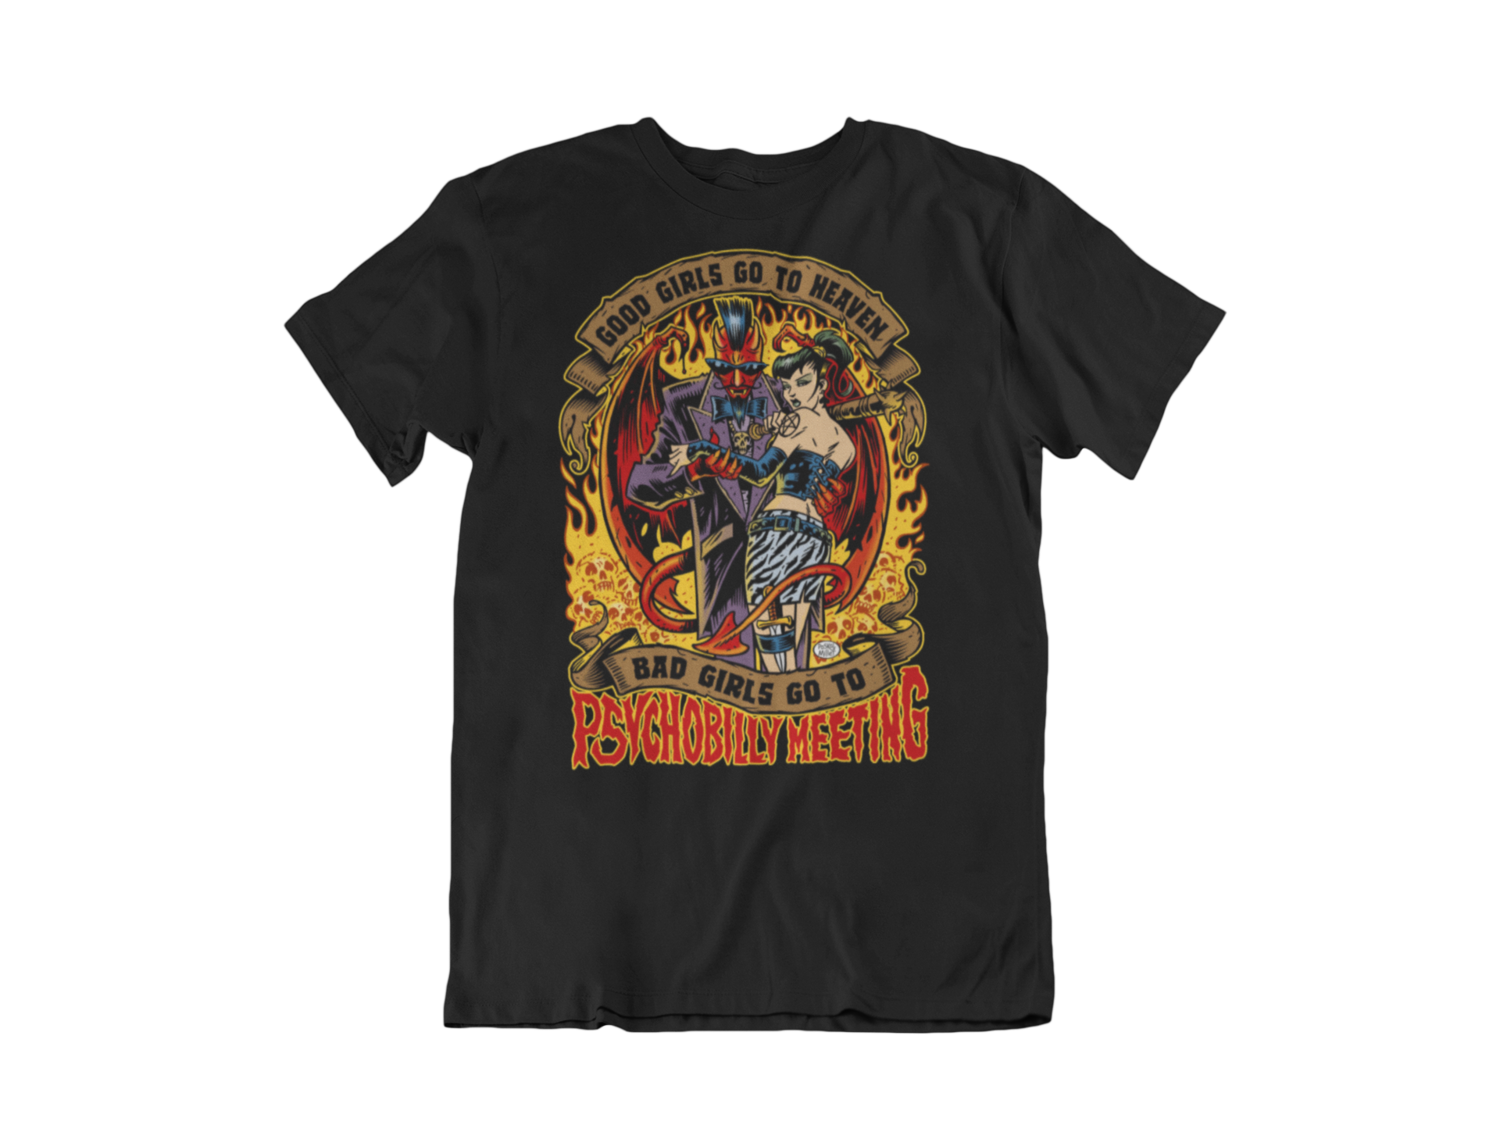 BAD GIRLS GO TO PSYCHOBILLY MEETING T-SHIRT MAN BY PASKAL